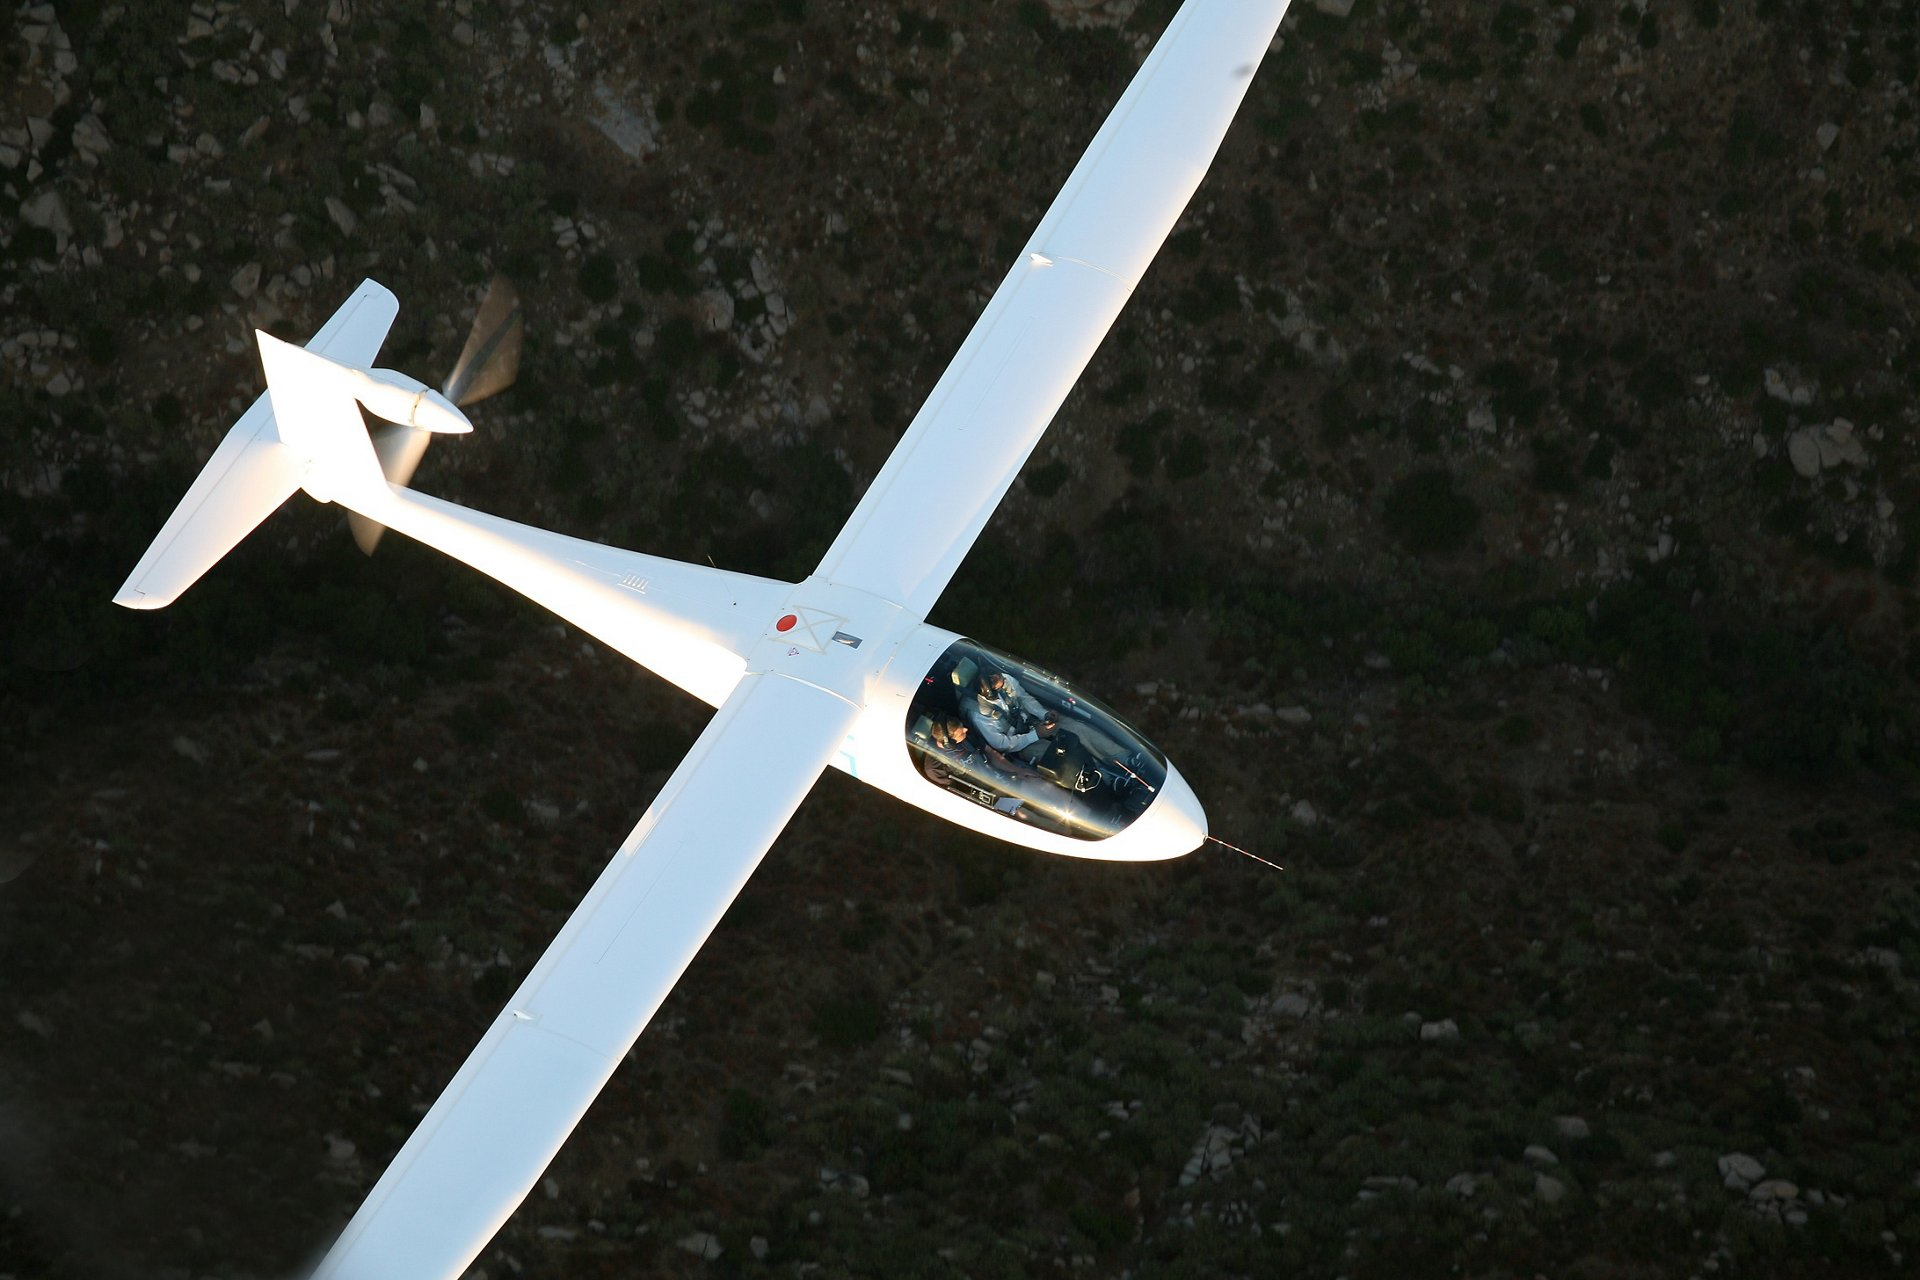 A representation of the Airbus-sponsored eGenius all-electric, two-seat aircraft in flight.